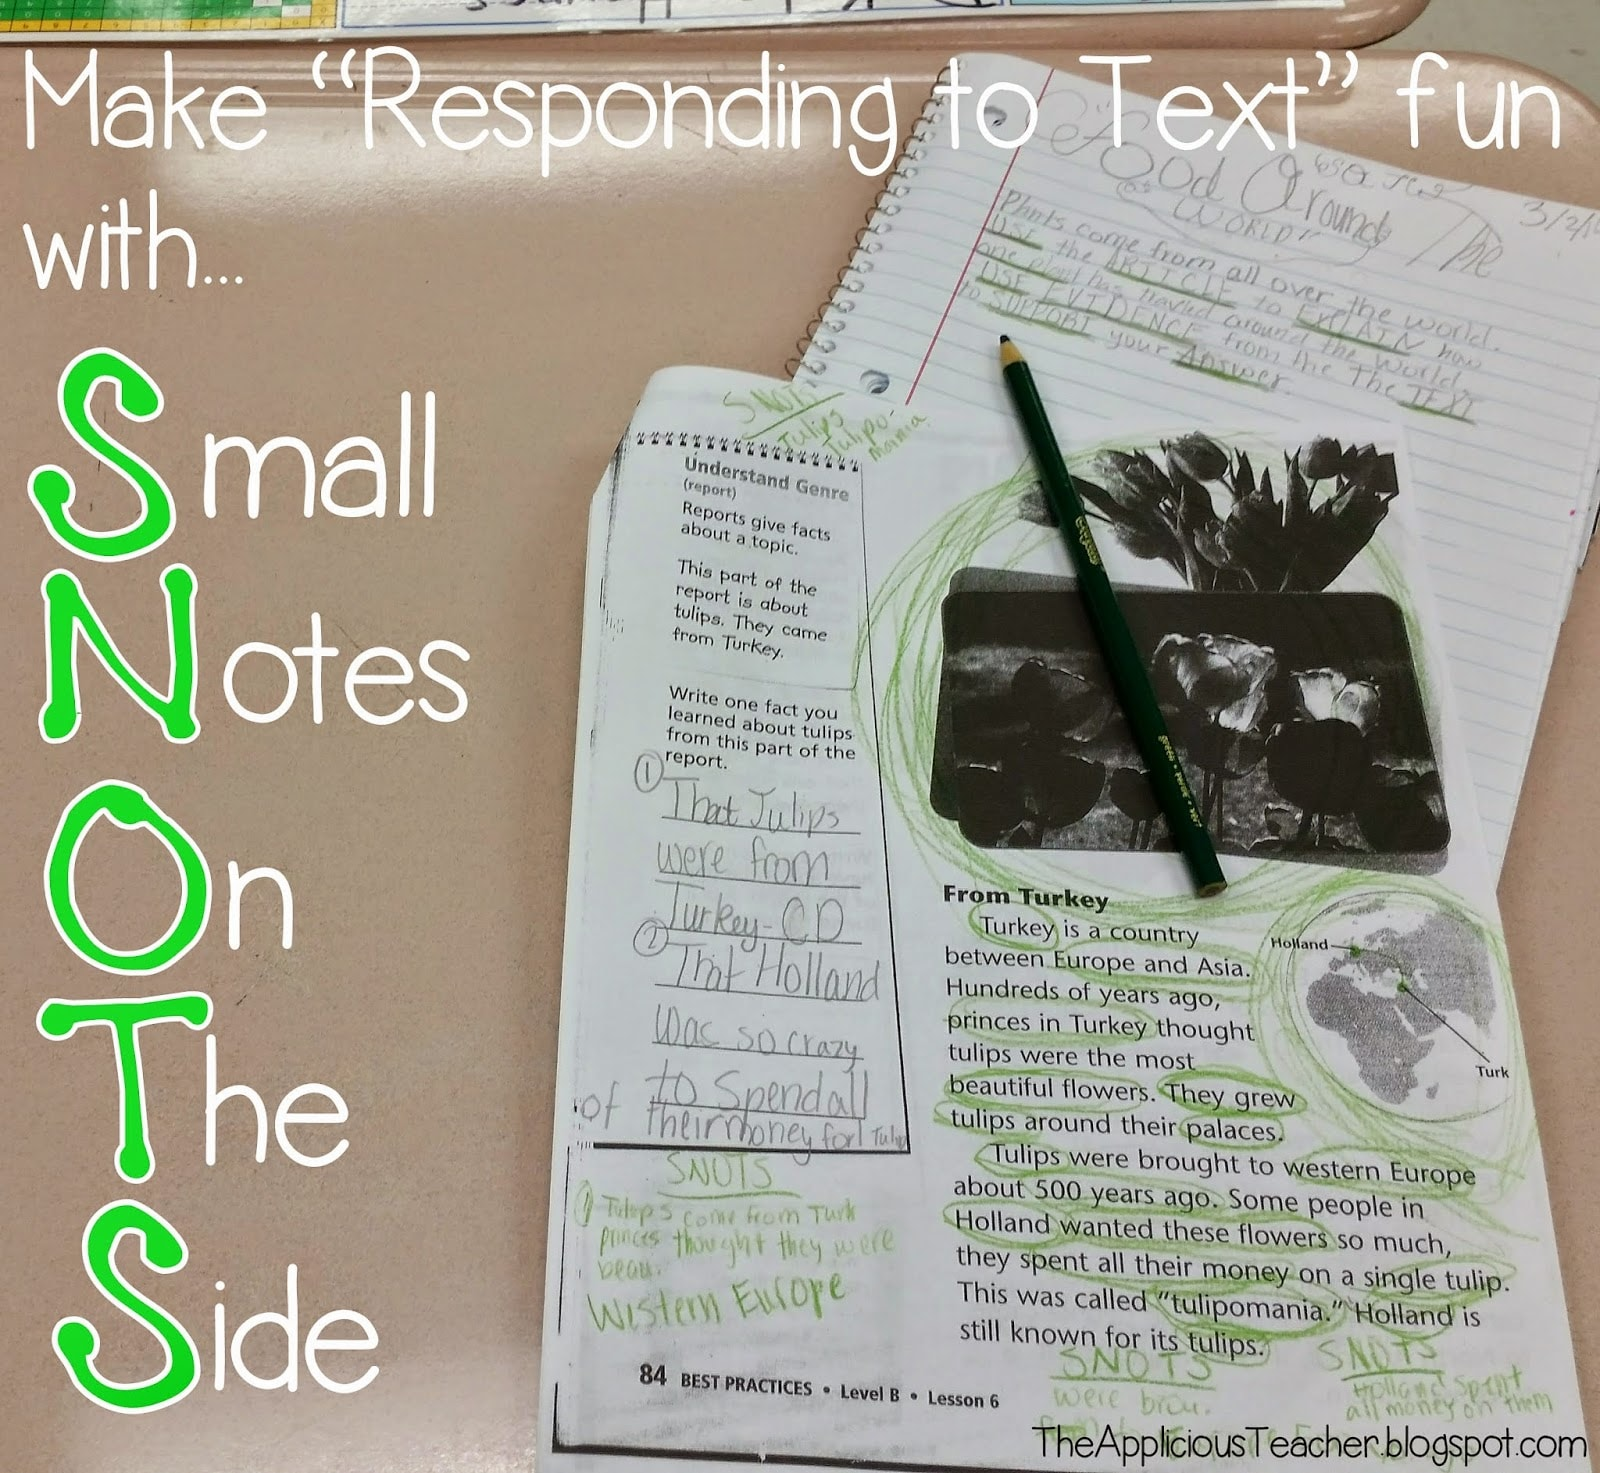 Boogieing Up Your Responding To Text With Snots  The Applicious Teacher